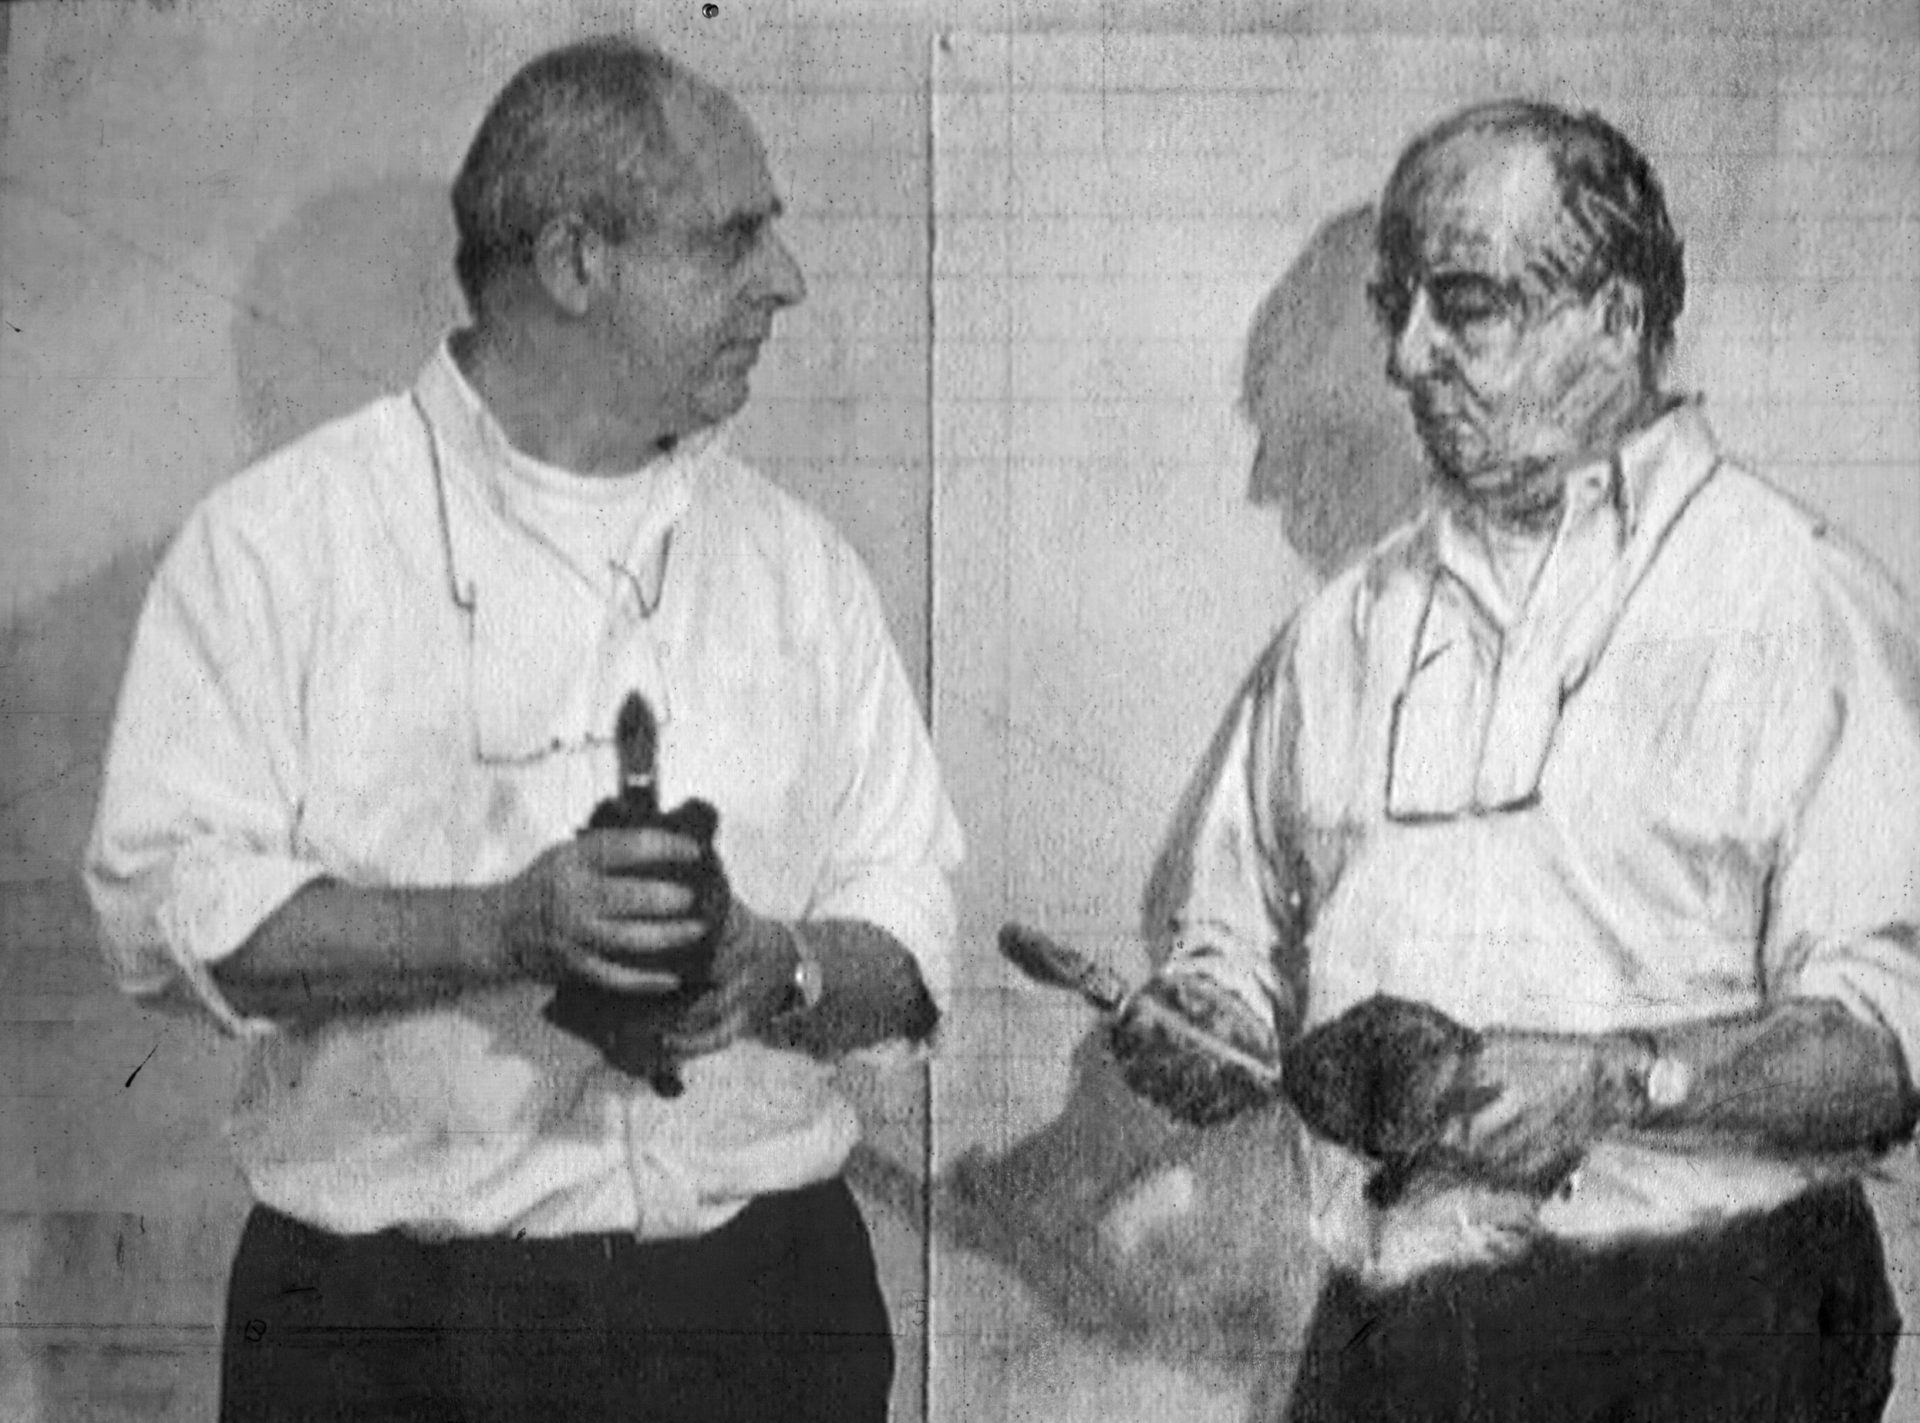 William Kentridge. Video still from Invisible Mending, 2003